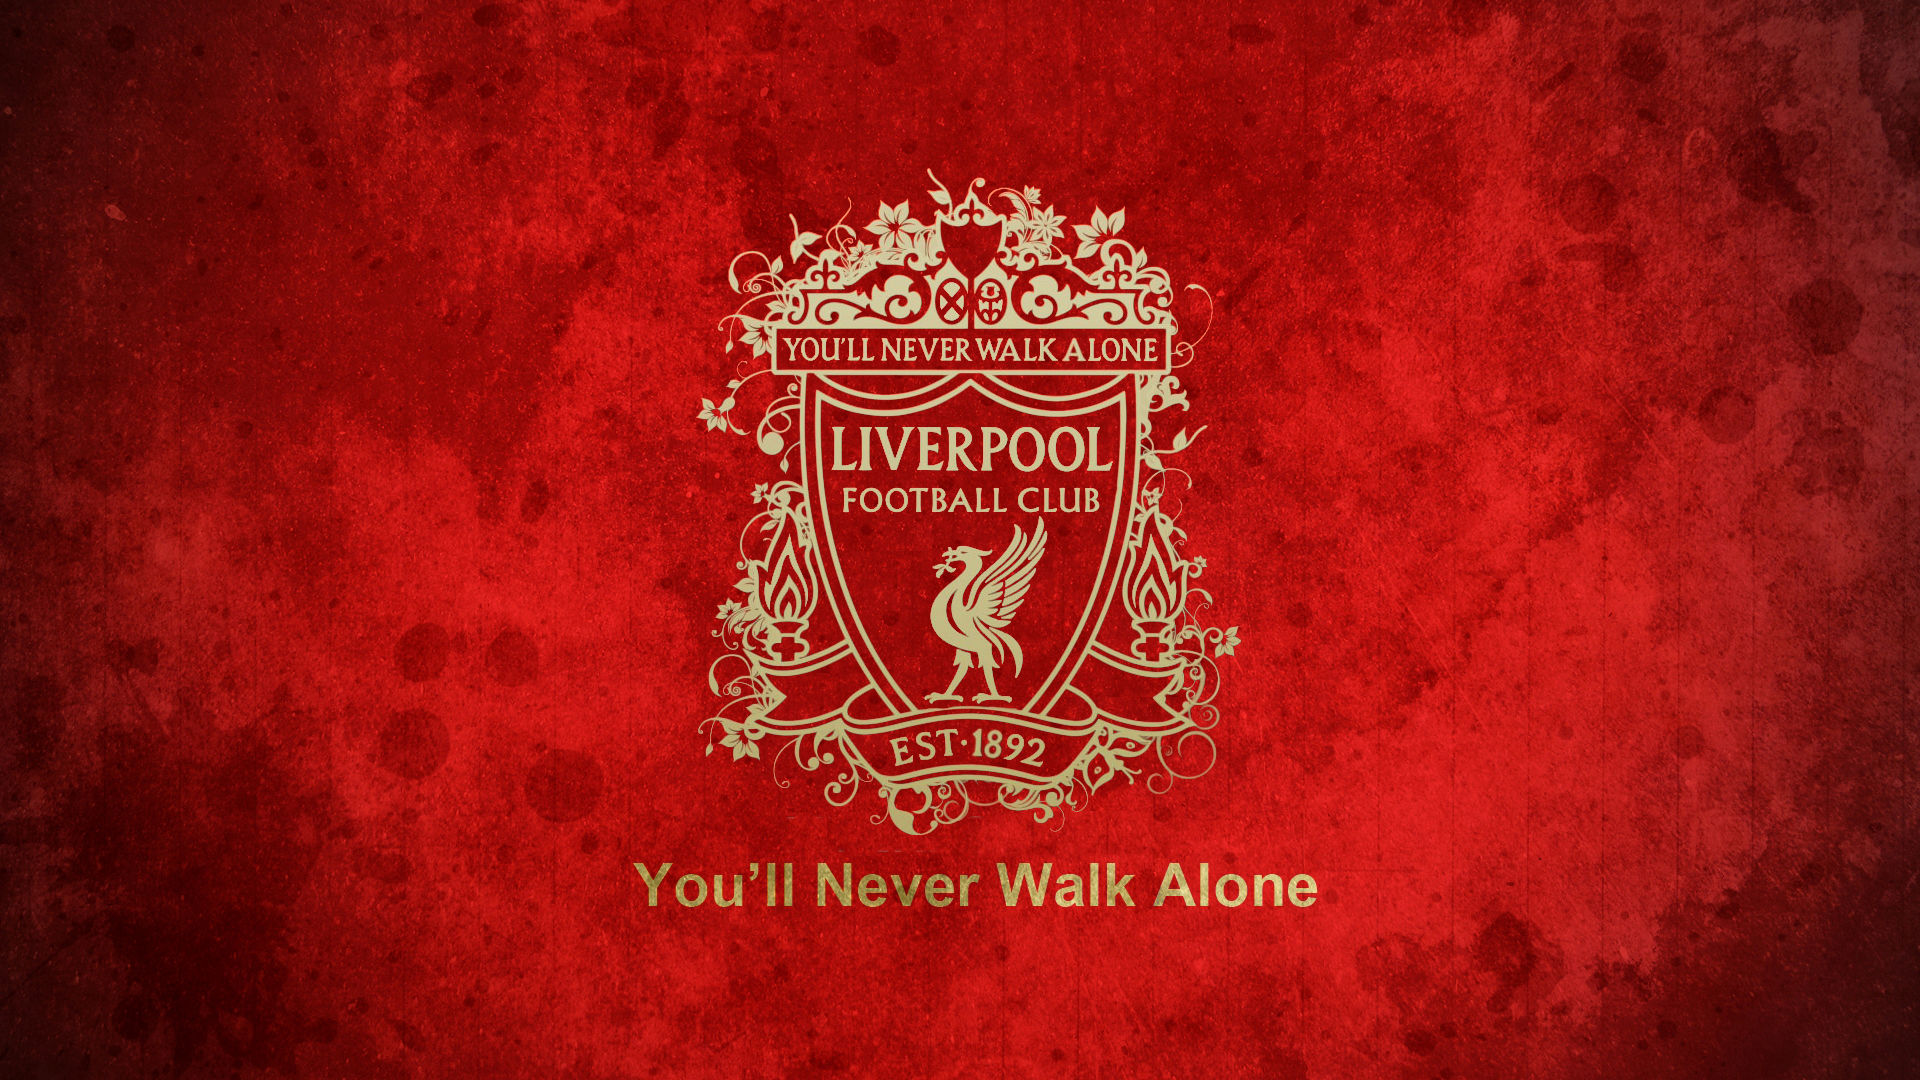 liverpool football club the most valuable as well as class